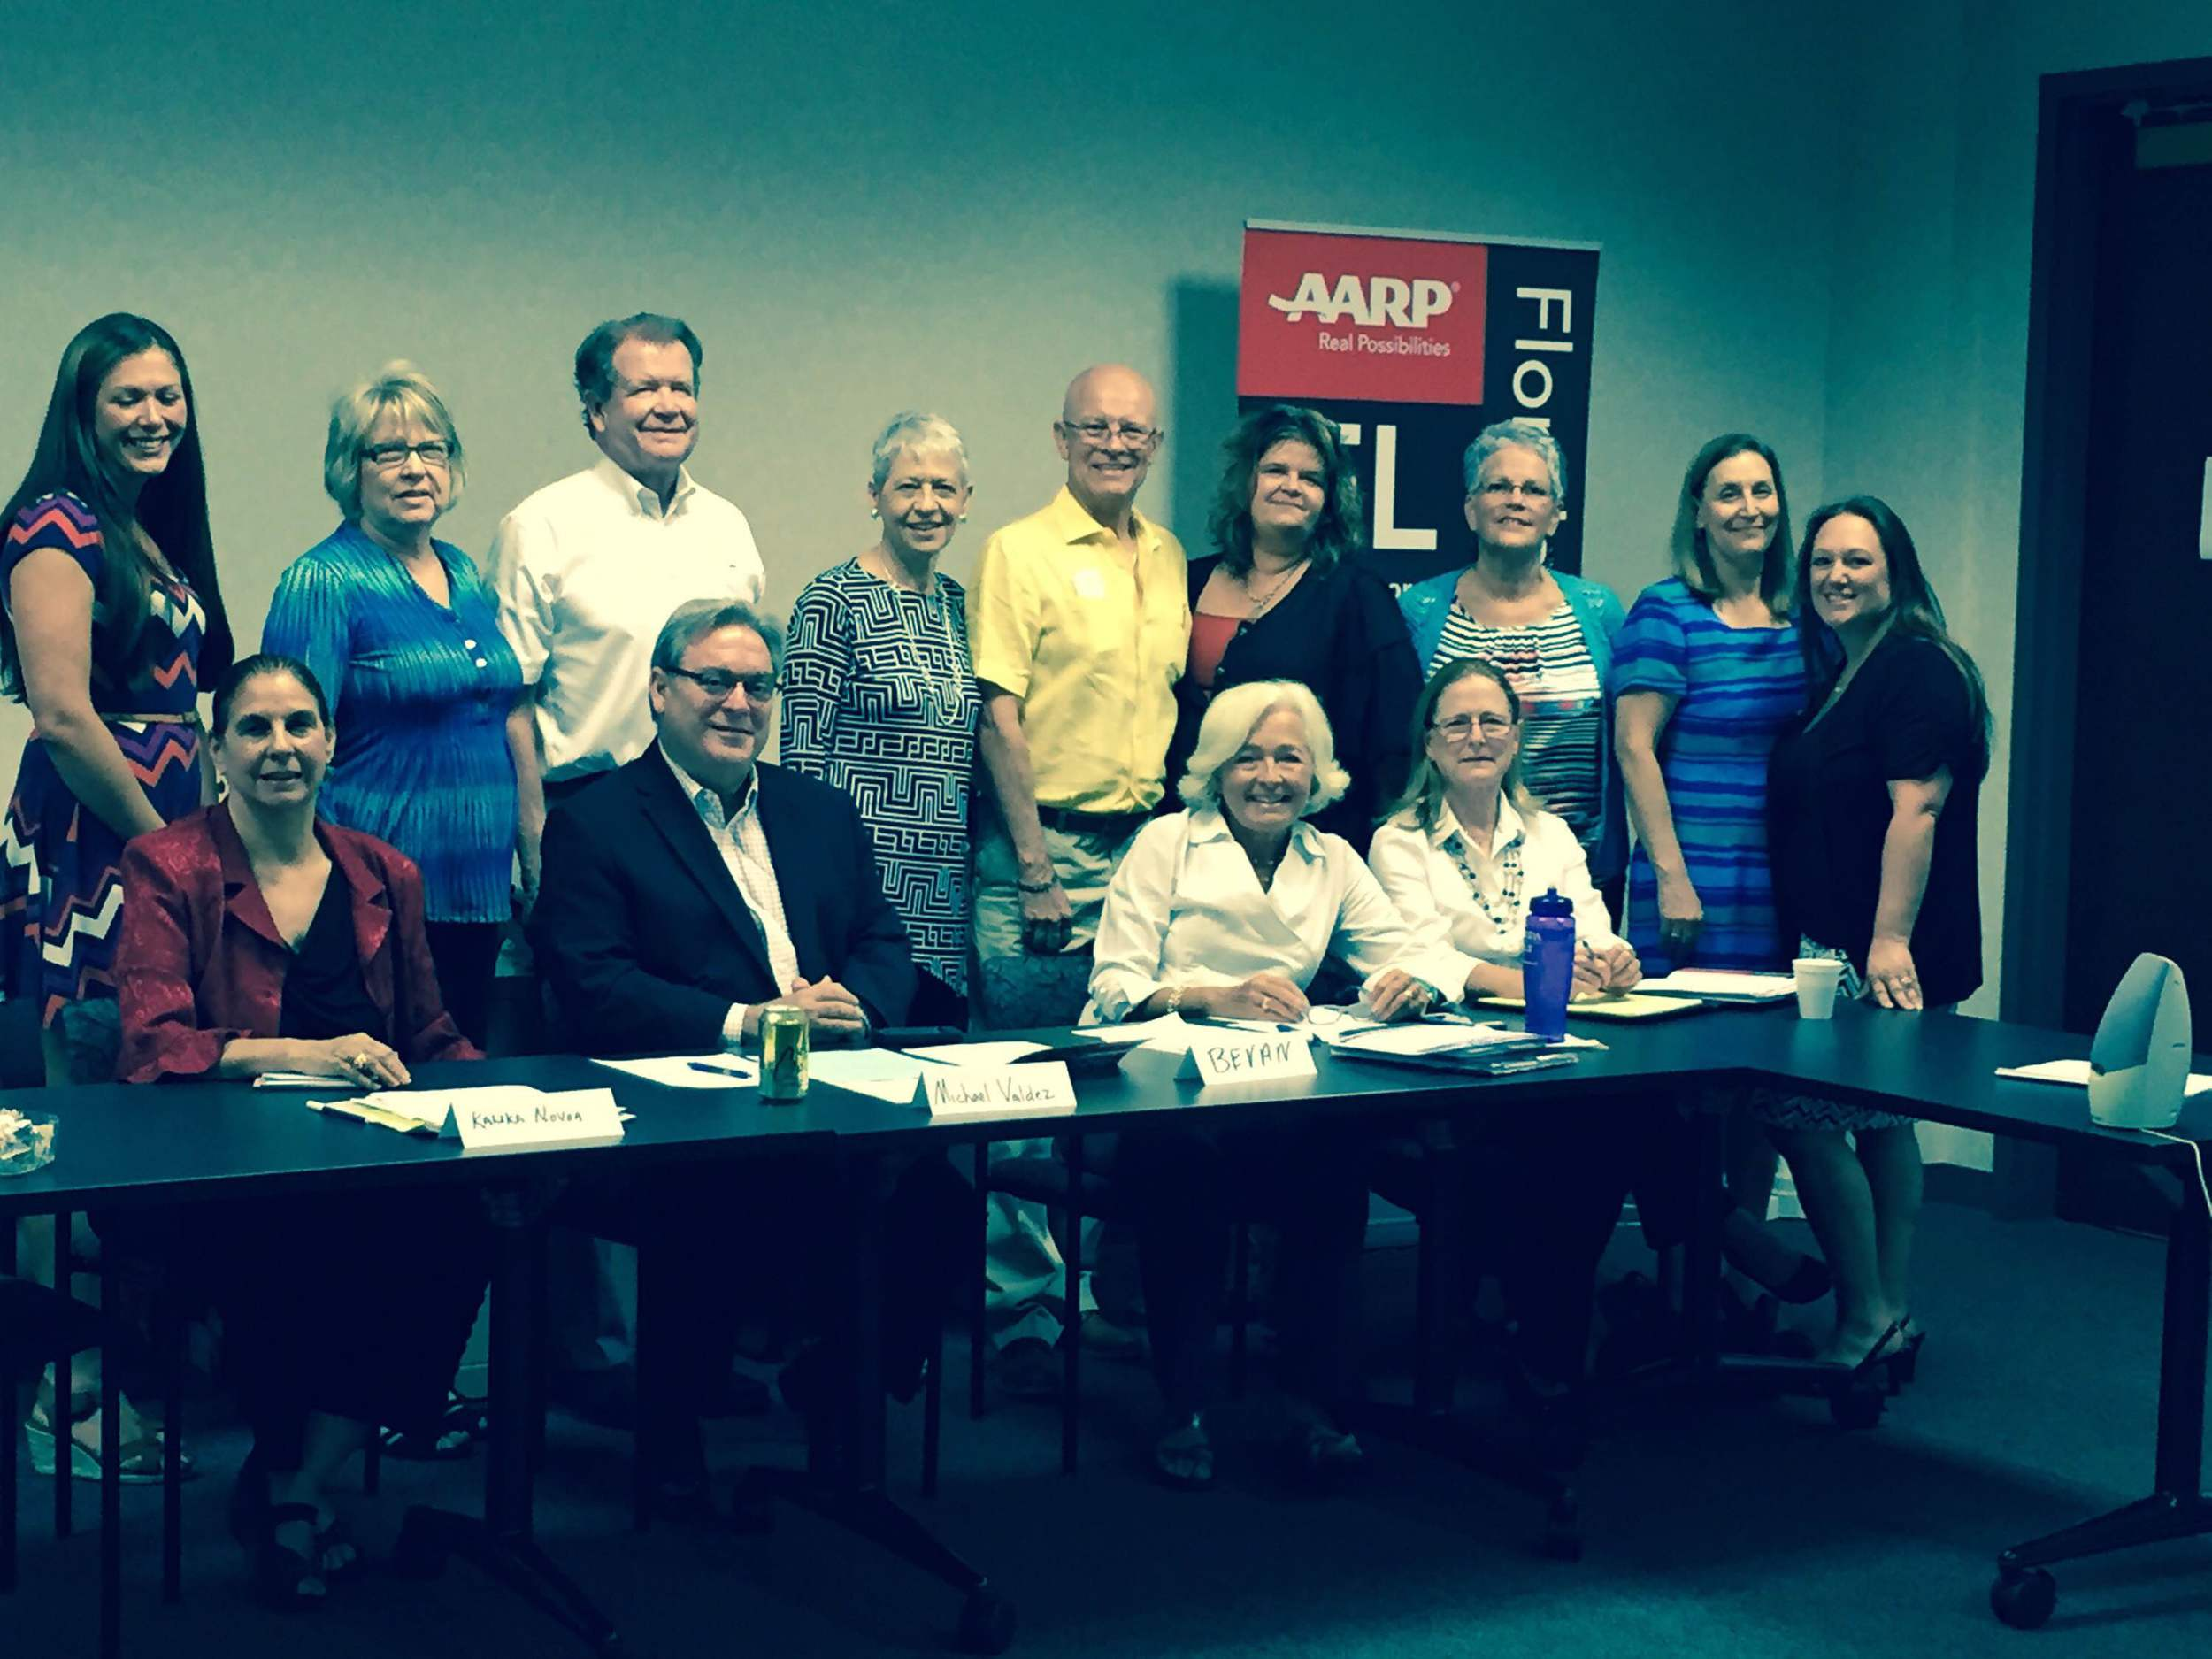 Our White House Conference on Aging Listening Event at #AARP Florida State office in St. Petersburg, Florida.